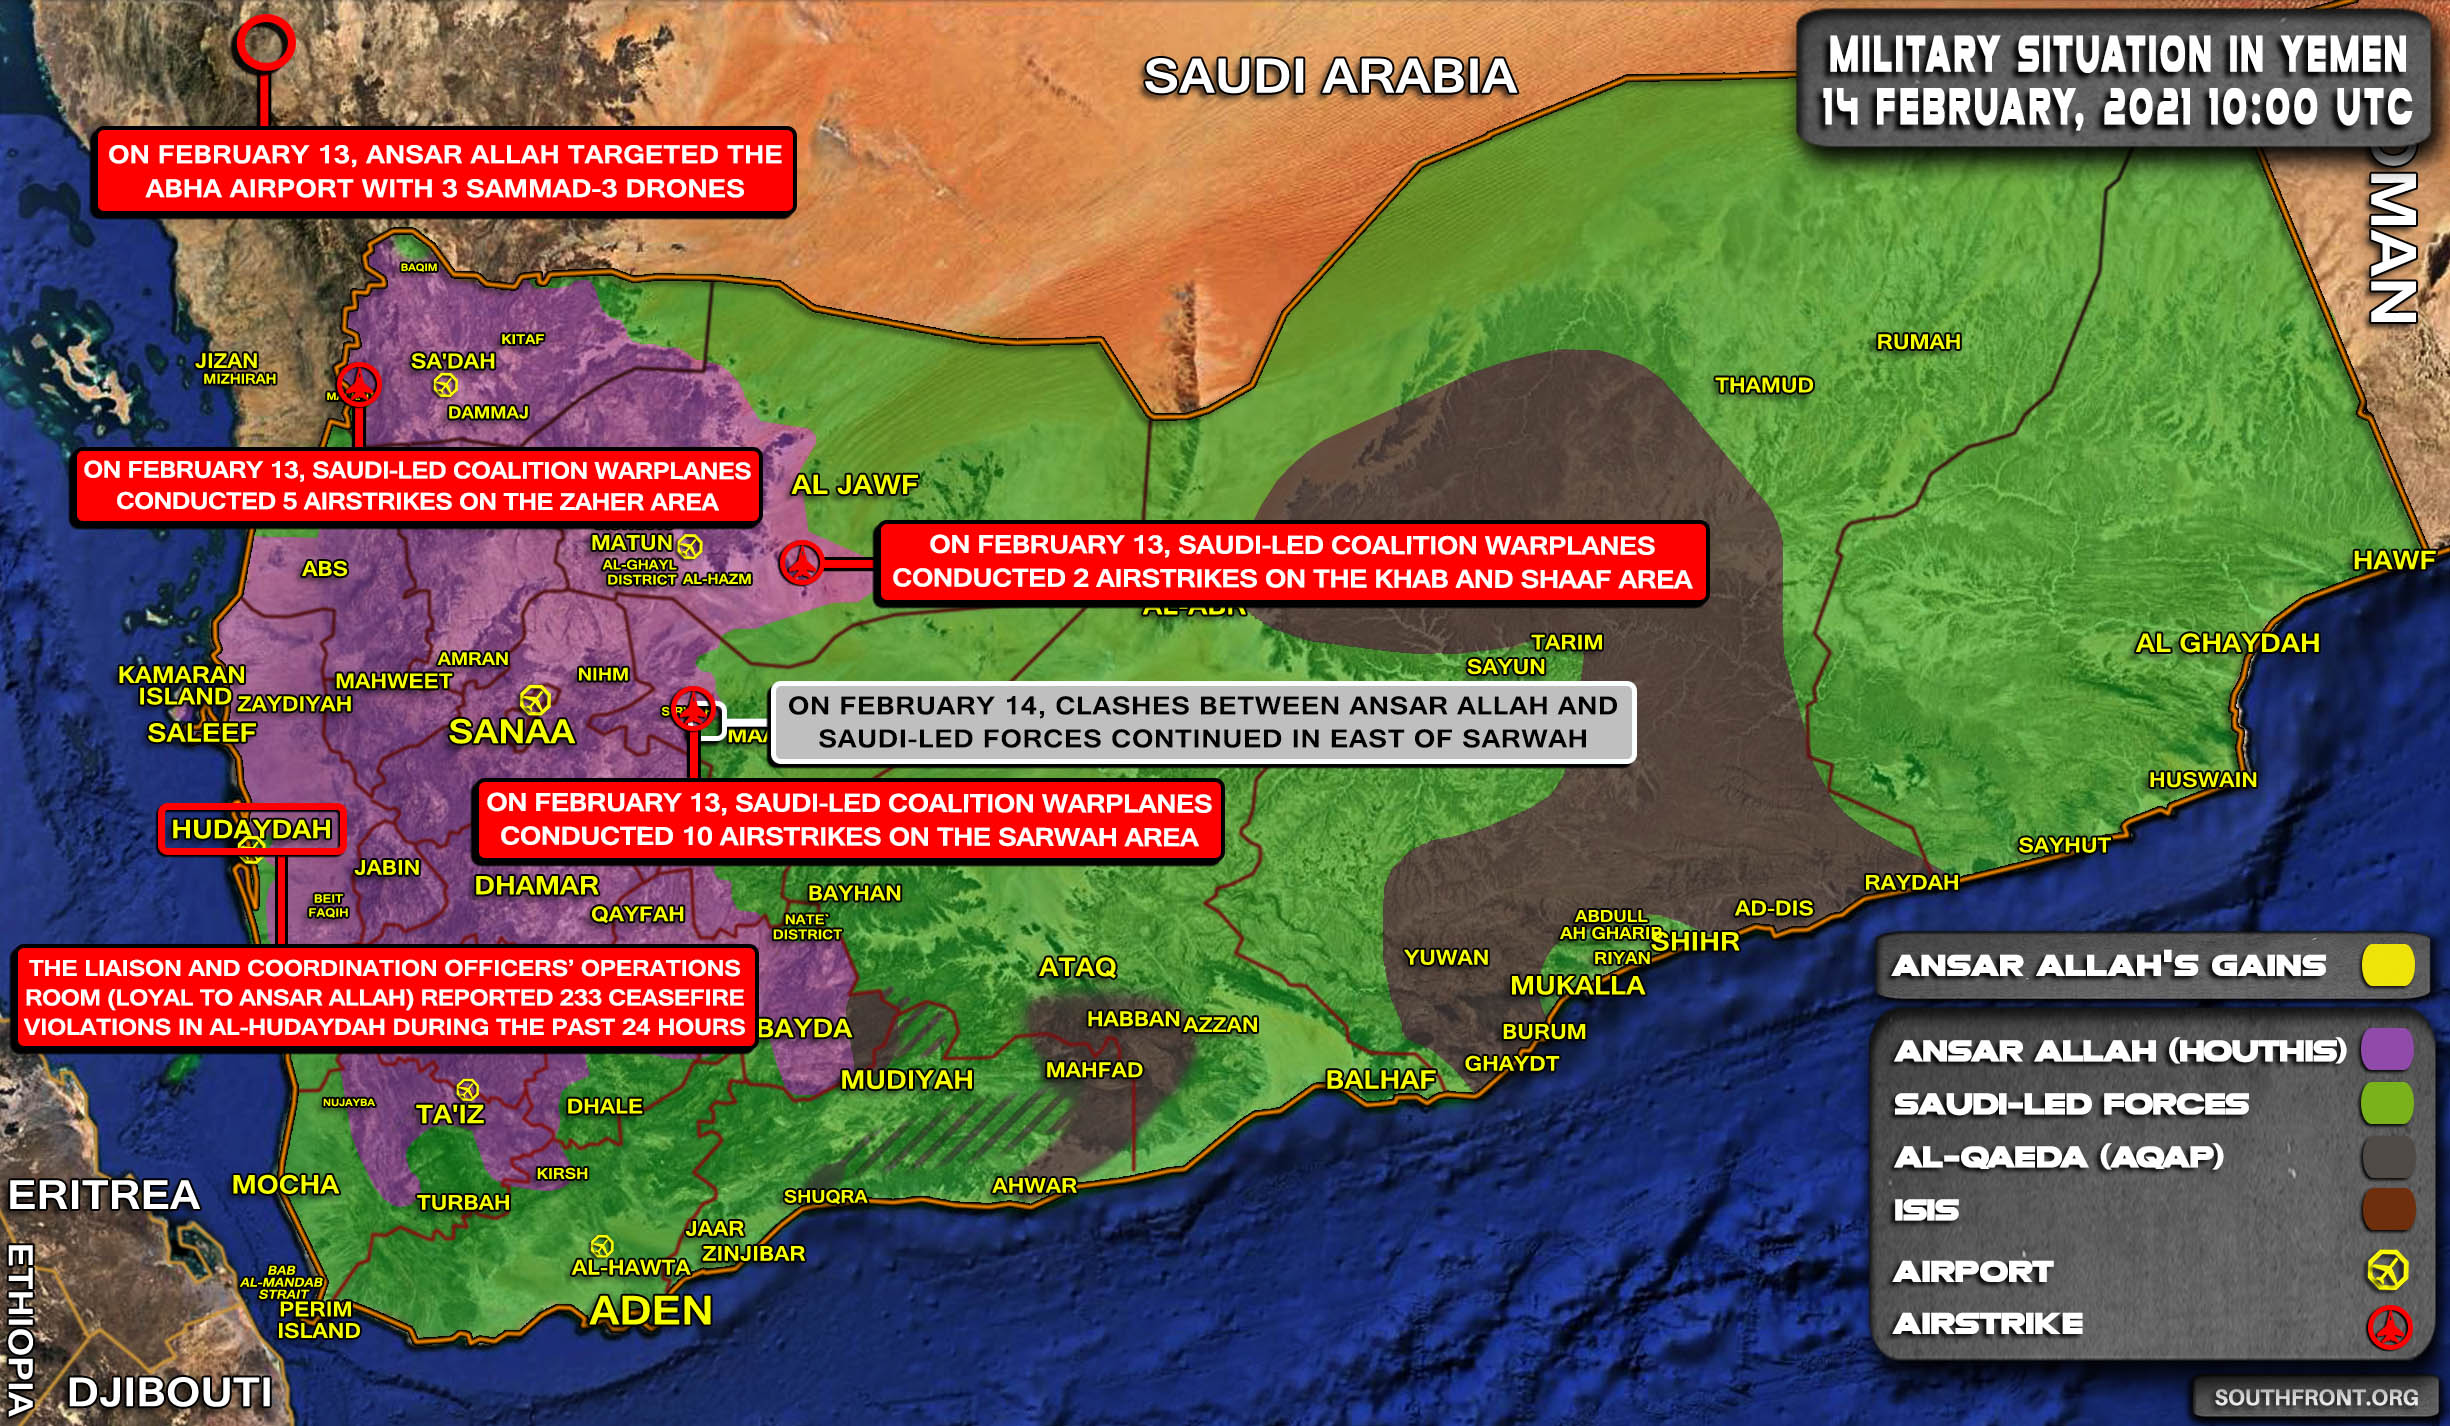 Military Situation In Yemen On February 14, 2021 (Map Update)